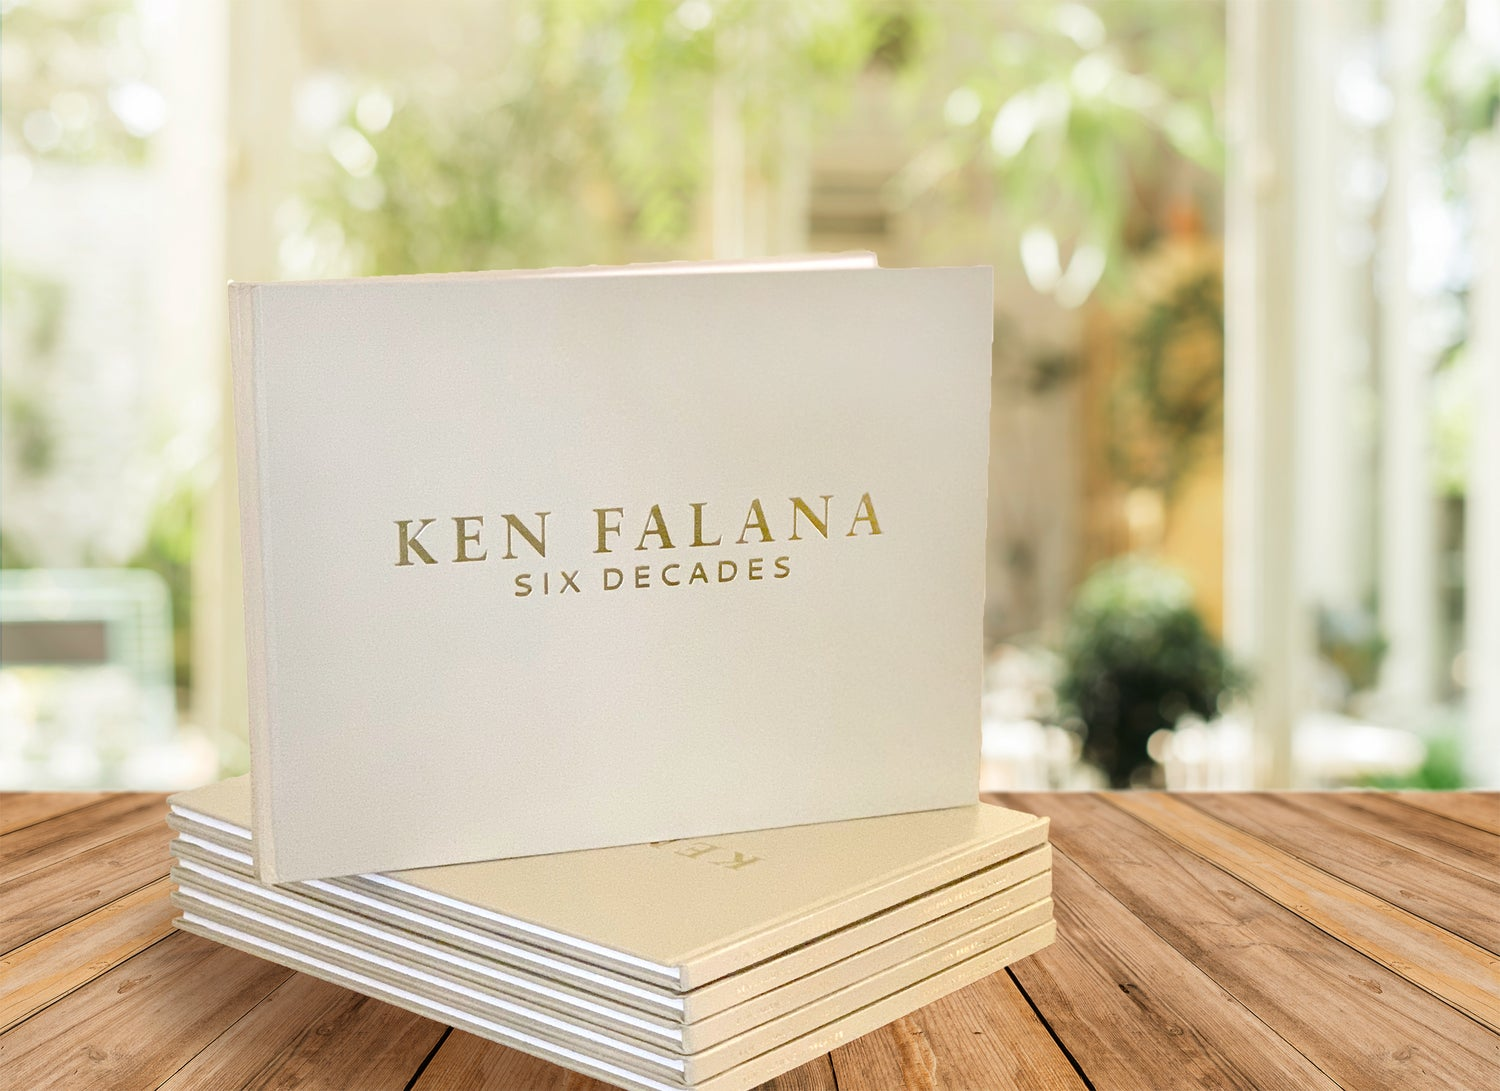 Image of Ken Falana: Six Decades Limited Edition Exhibition Catalog